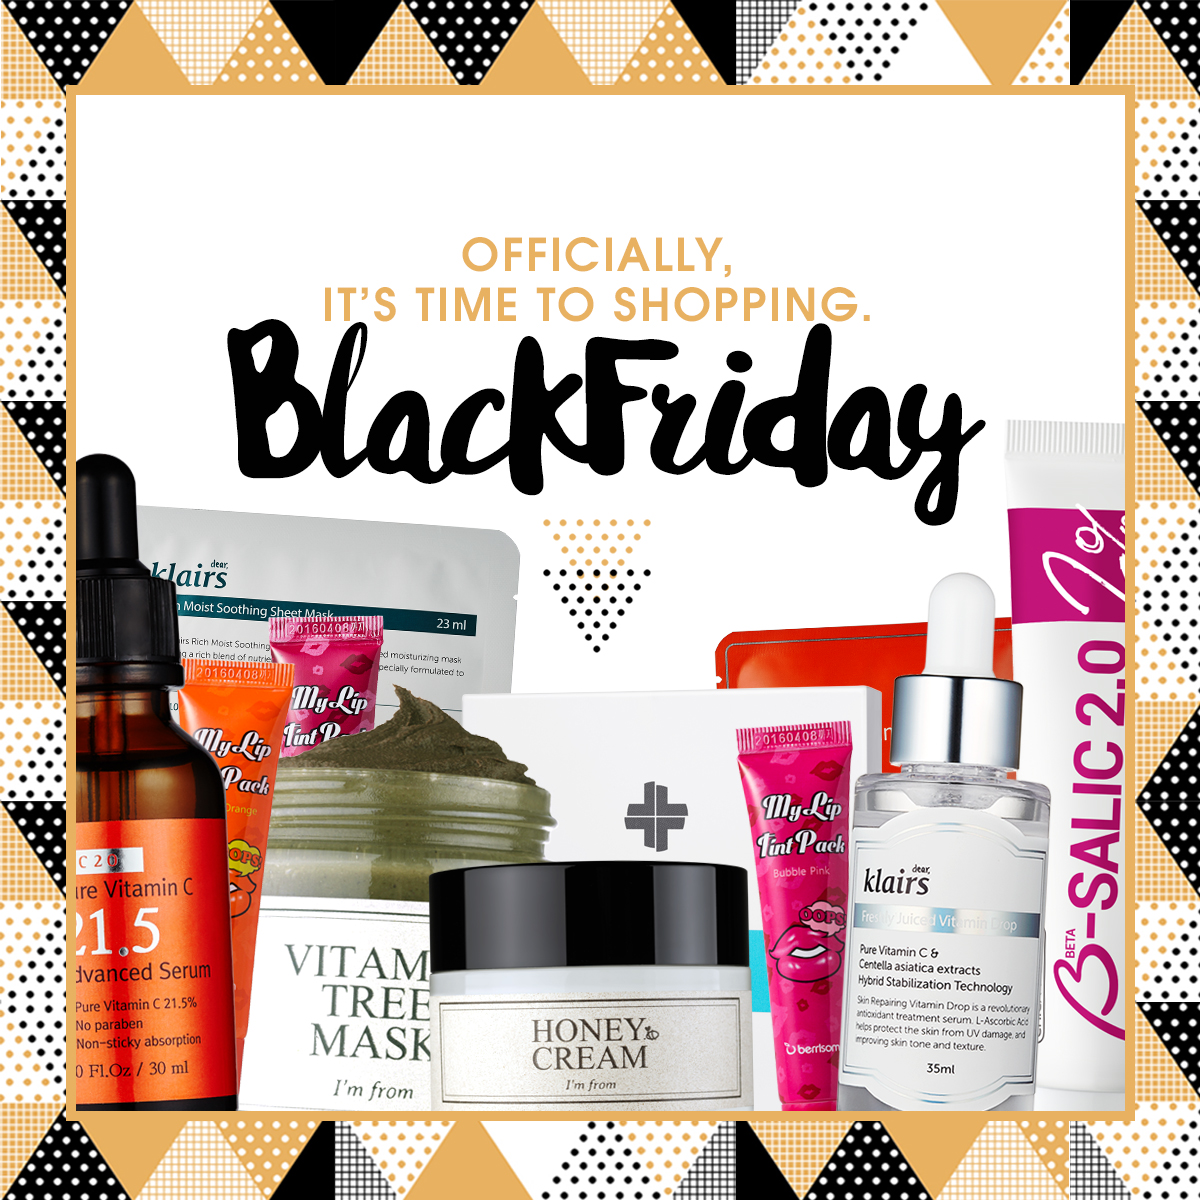 WISHTREND BLACK FRIDAY 2015